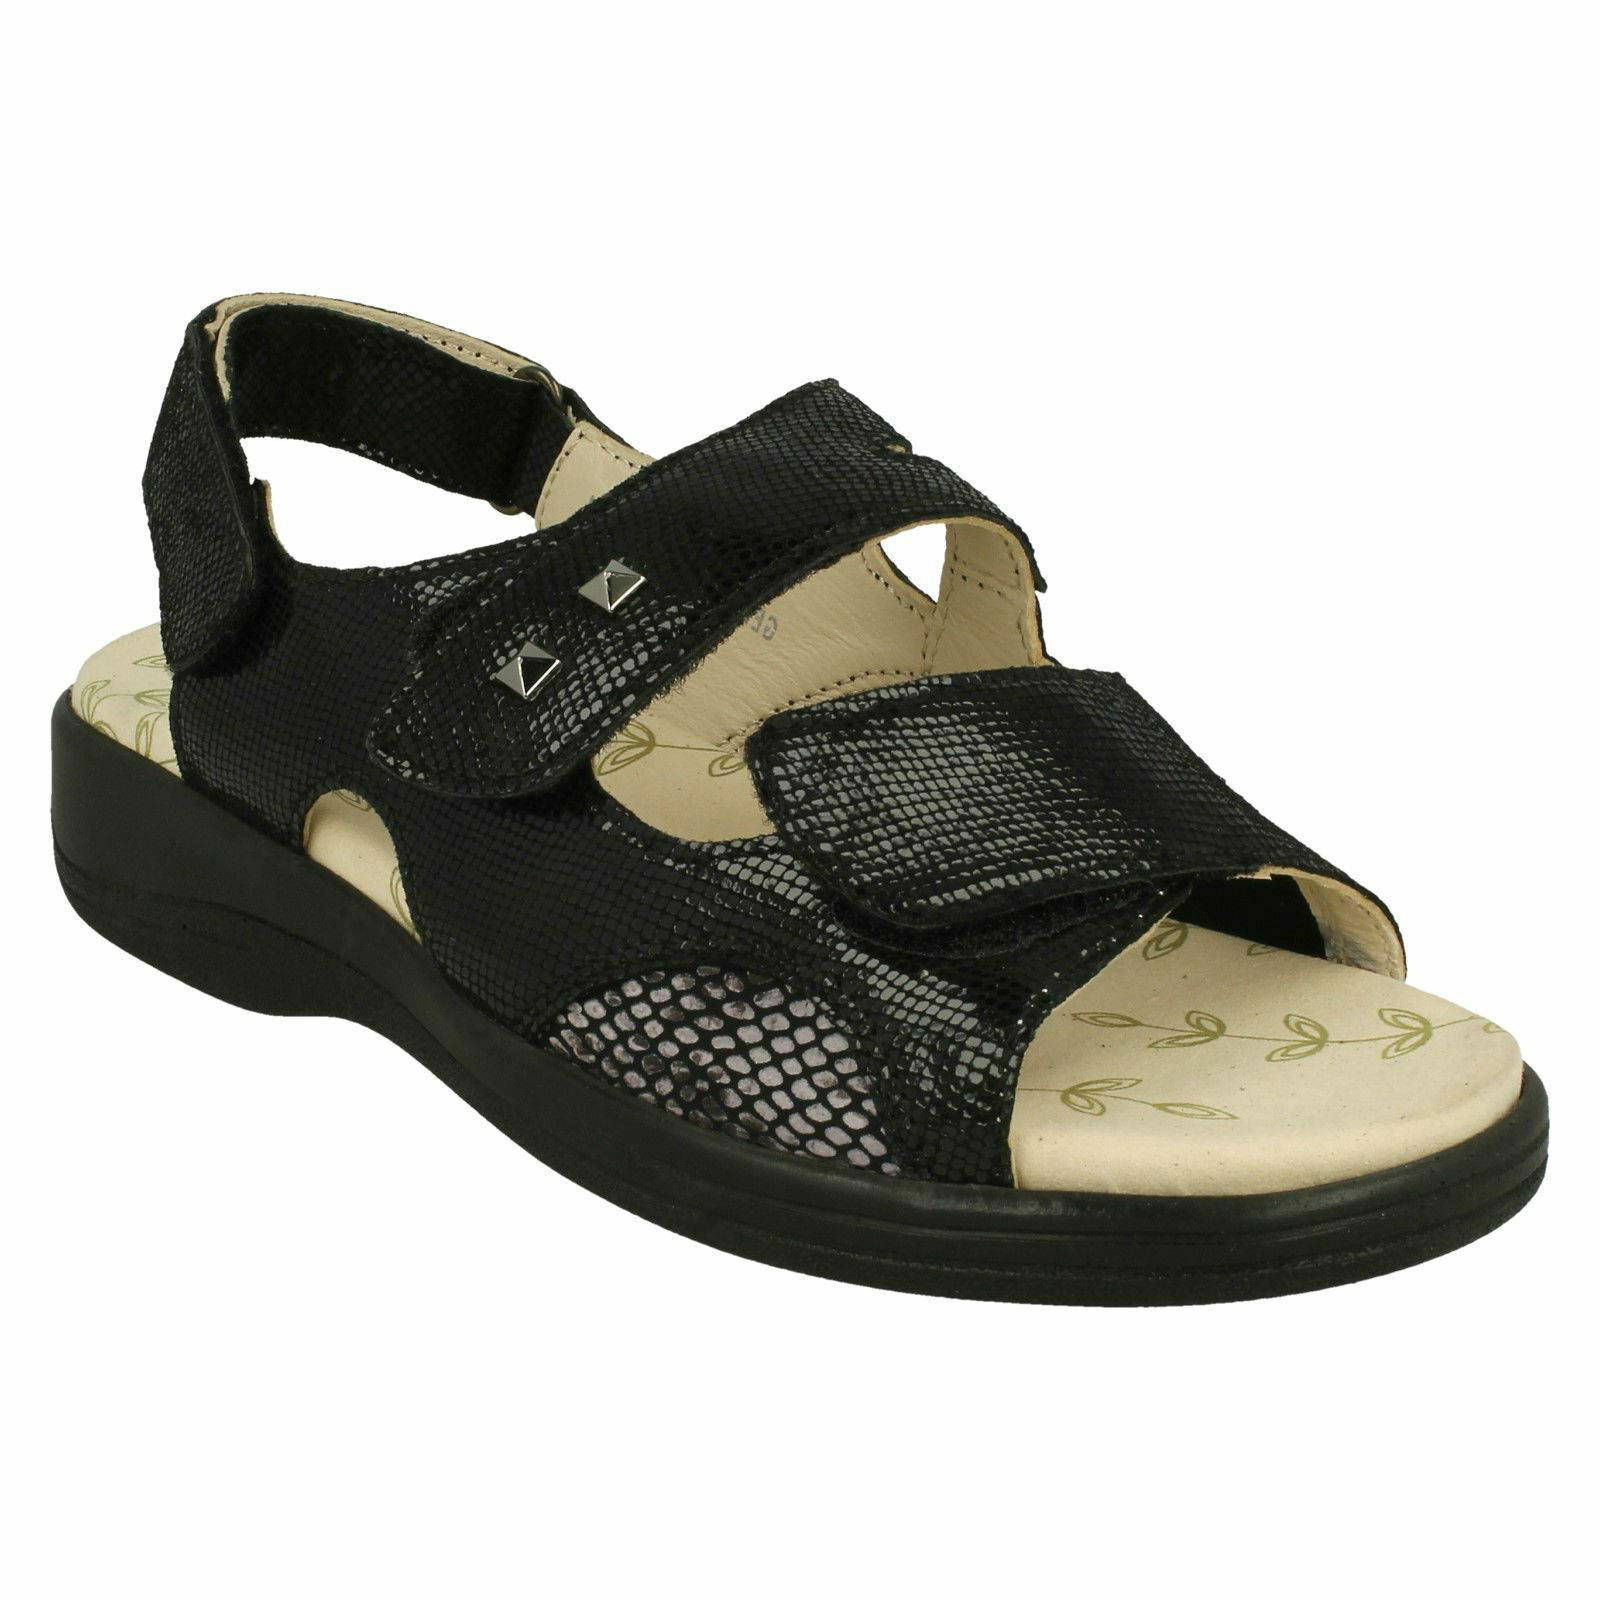 GEMSTONE PADDERS LADIES LEATHER EXTRA WIDE CASUAL OPEN TOE COMFORT SUMMER SANDAL